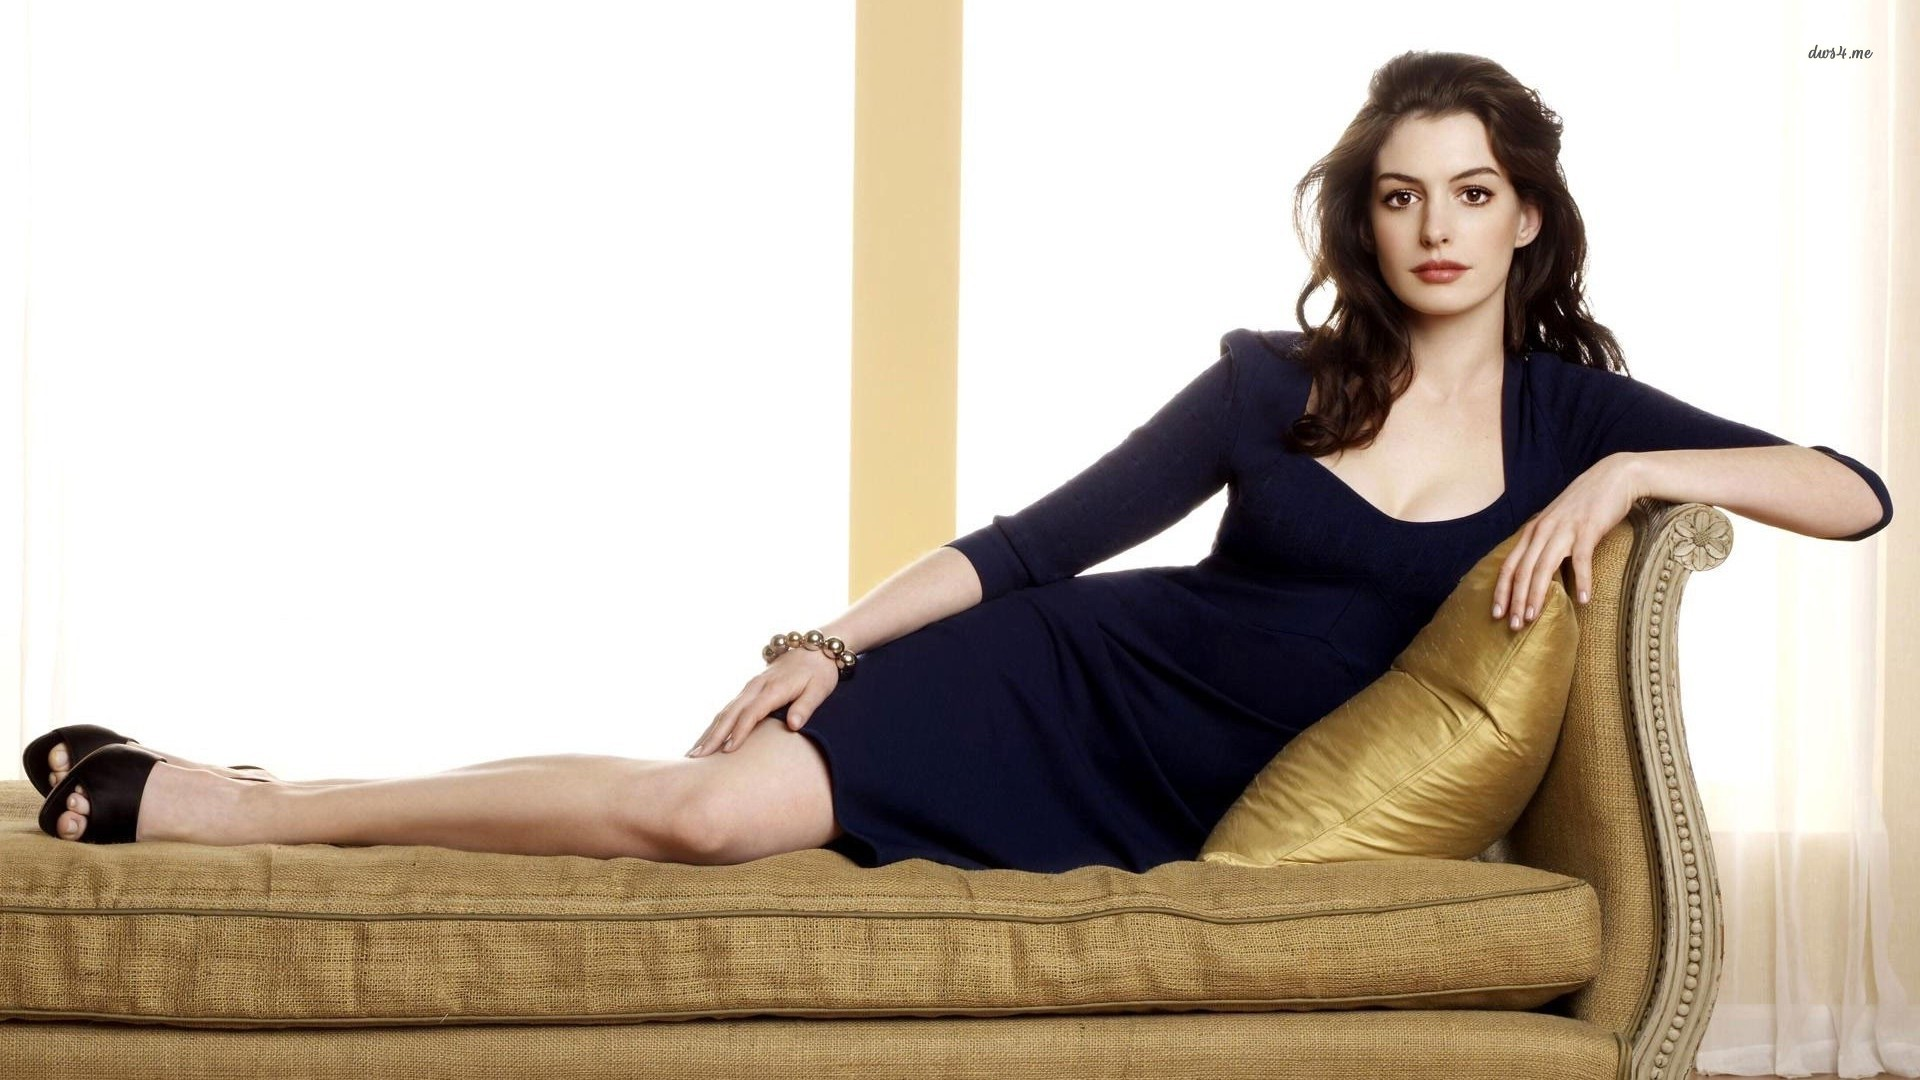 1920x1080 - Anne Hathaway Wallpapers 7